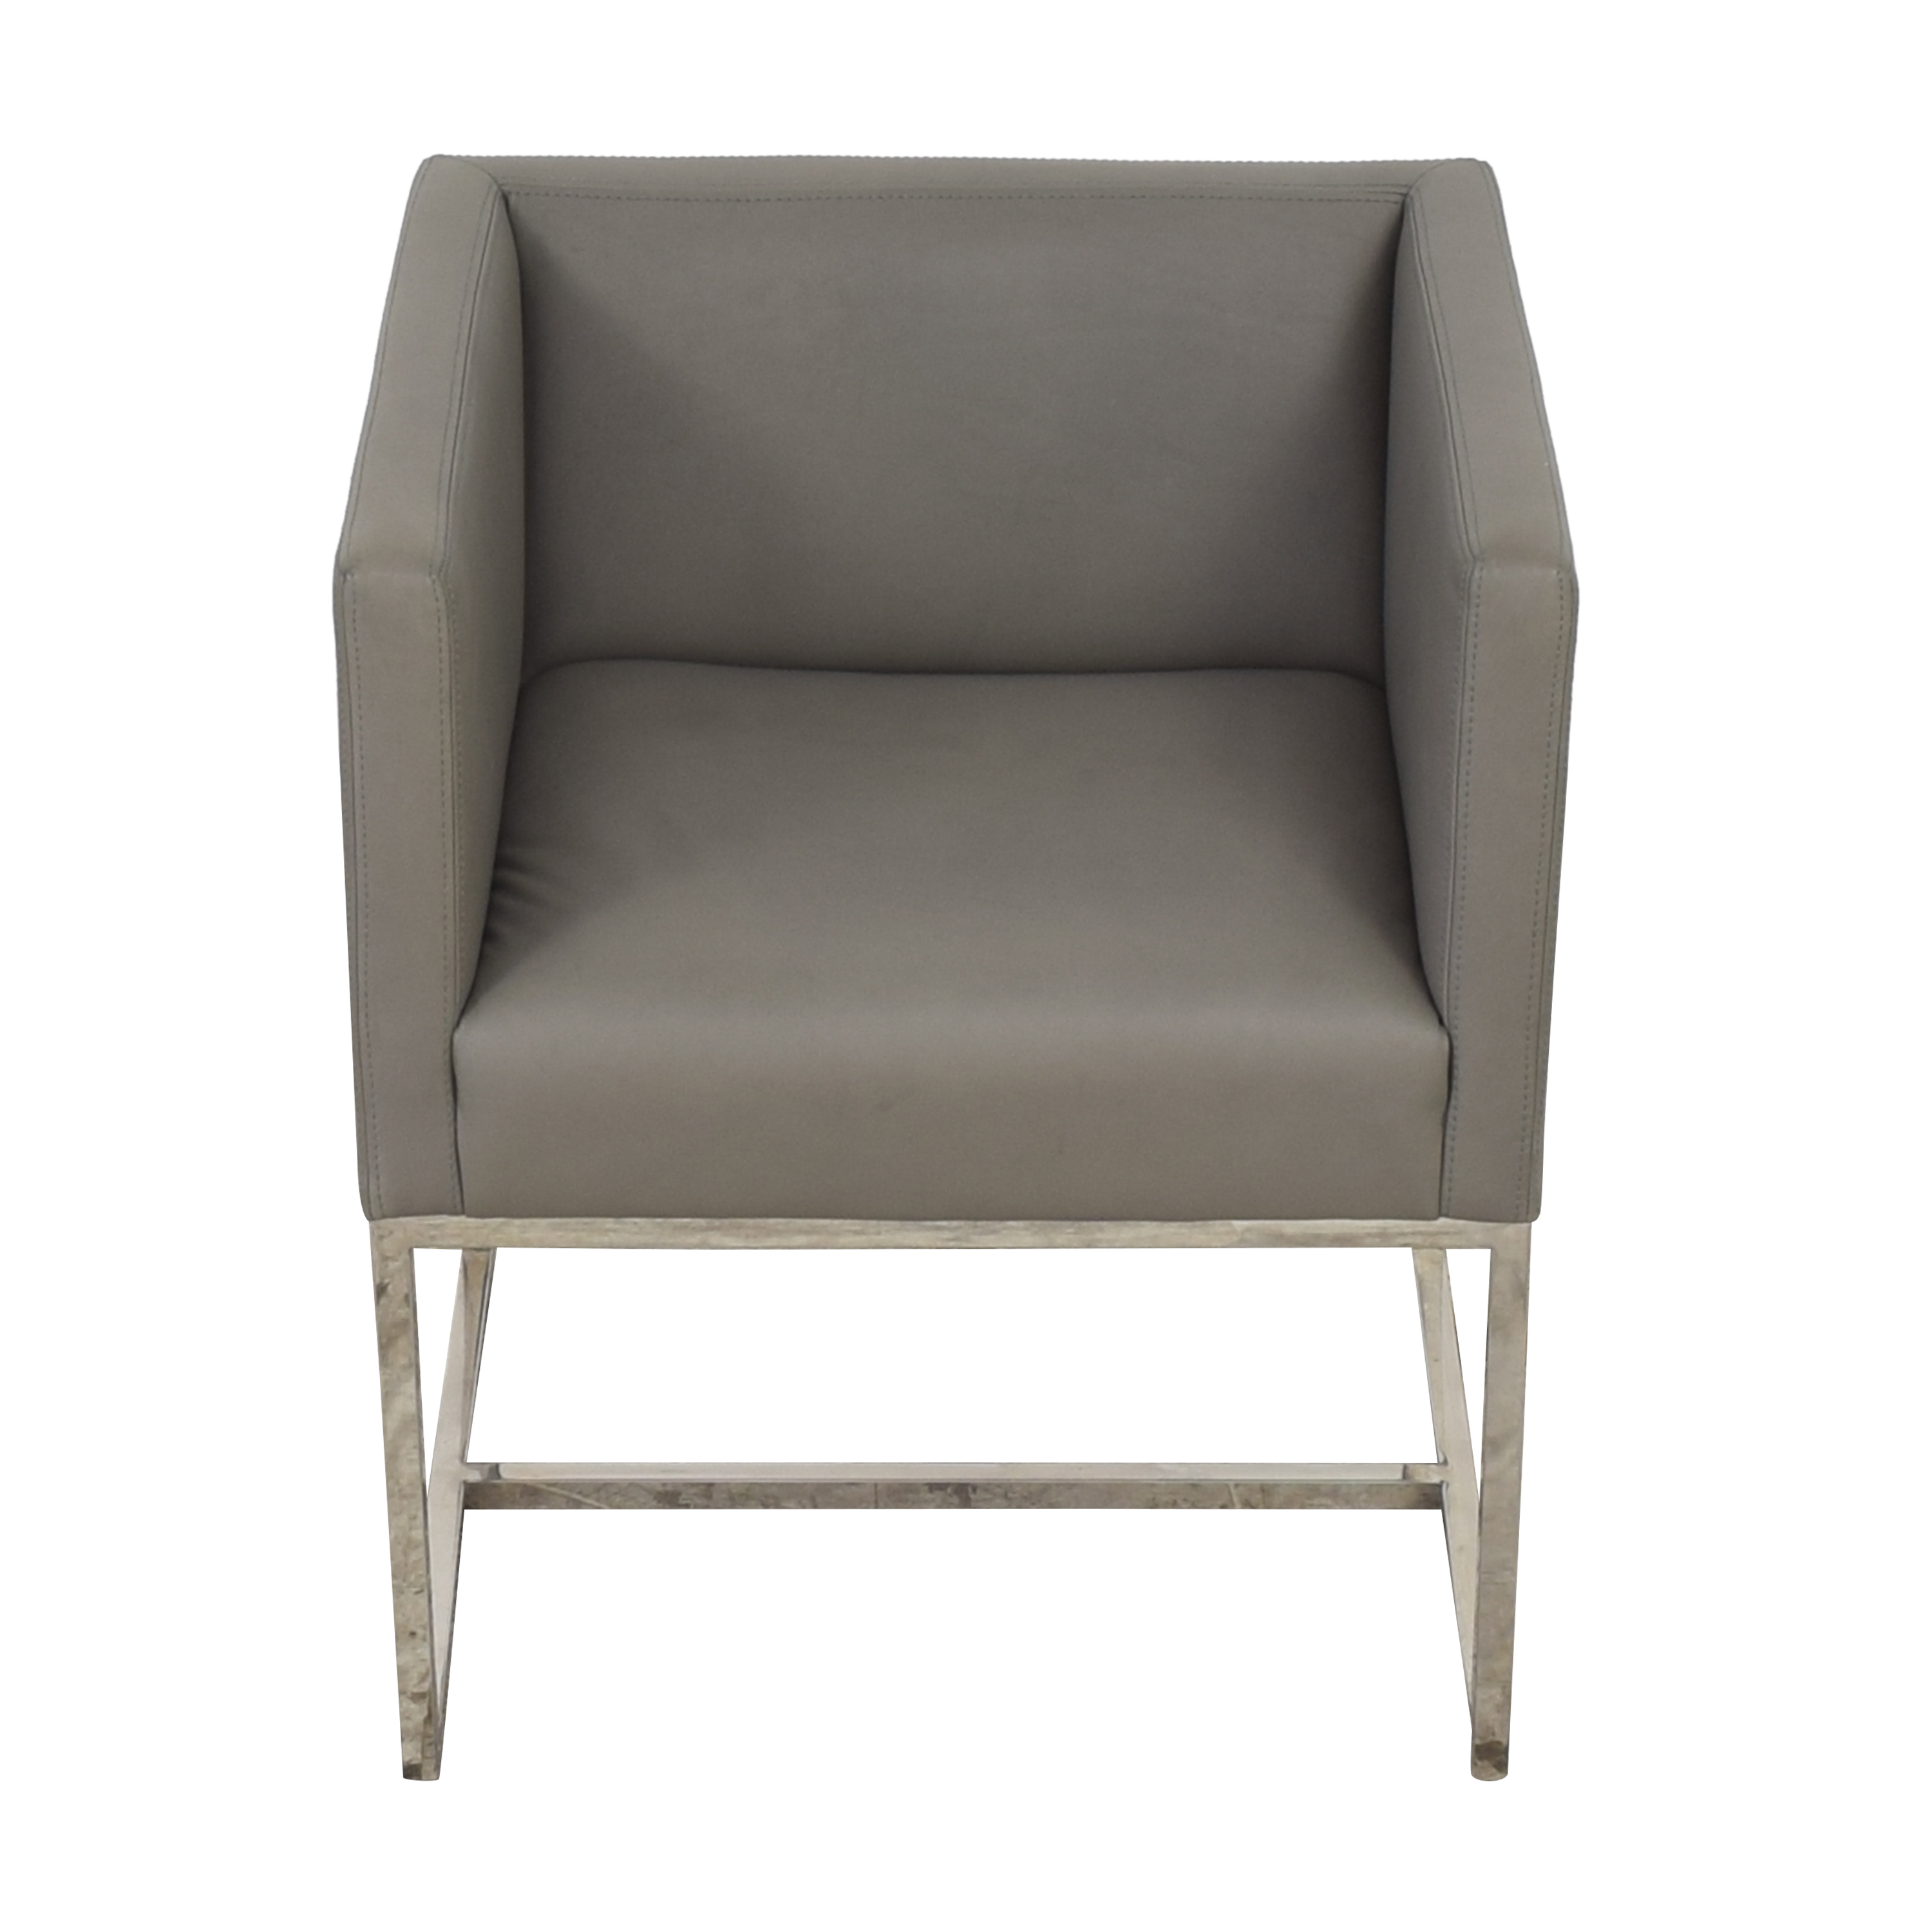 Restoration Hardware Restoration Hardware Emery Shelter Armchair Chairs